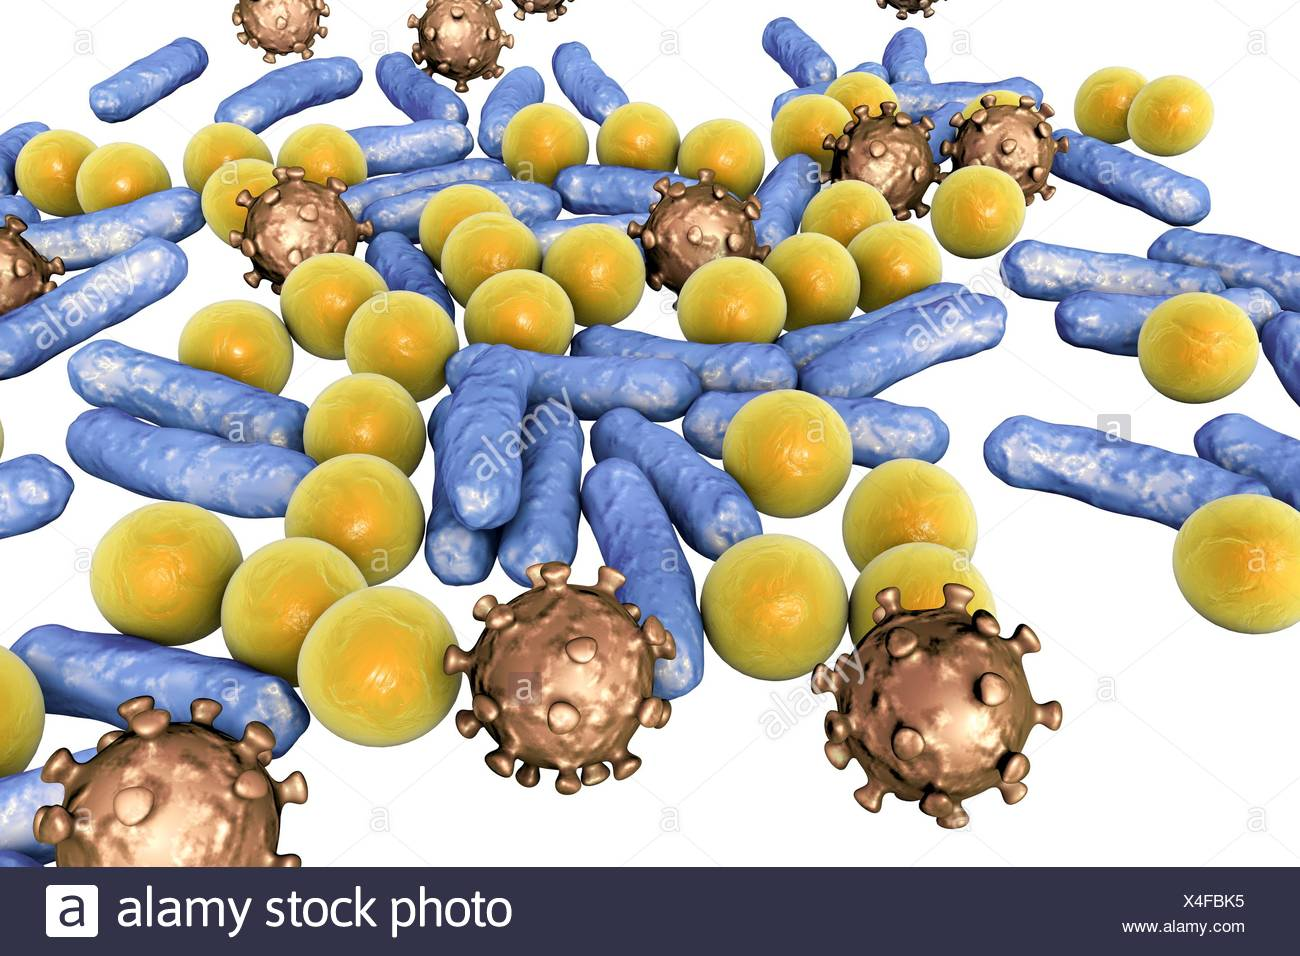 Various microbes of different shapes, computer illustration. Mixture of microorganisms including spherical (cocci) and rod-shaped bacteria together with viruses. - Stock Image